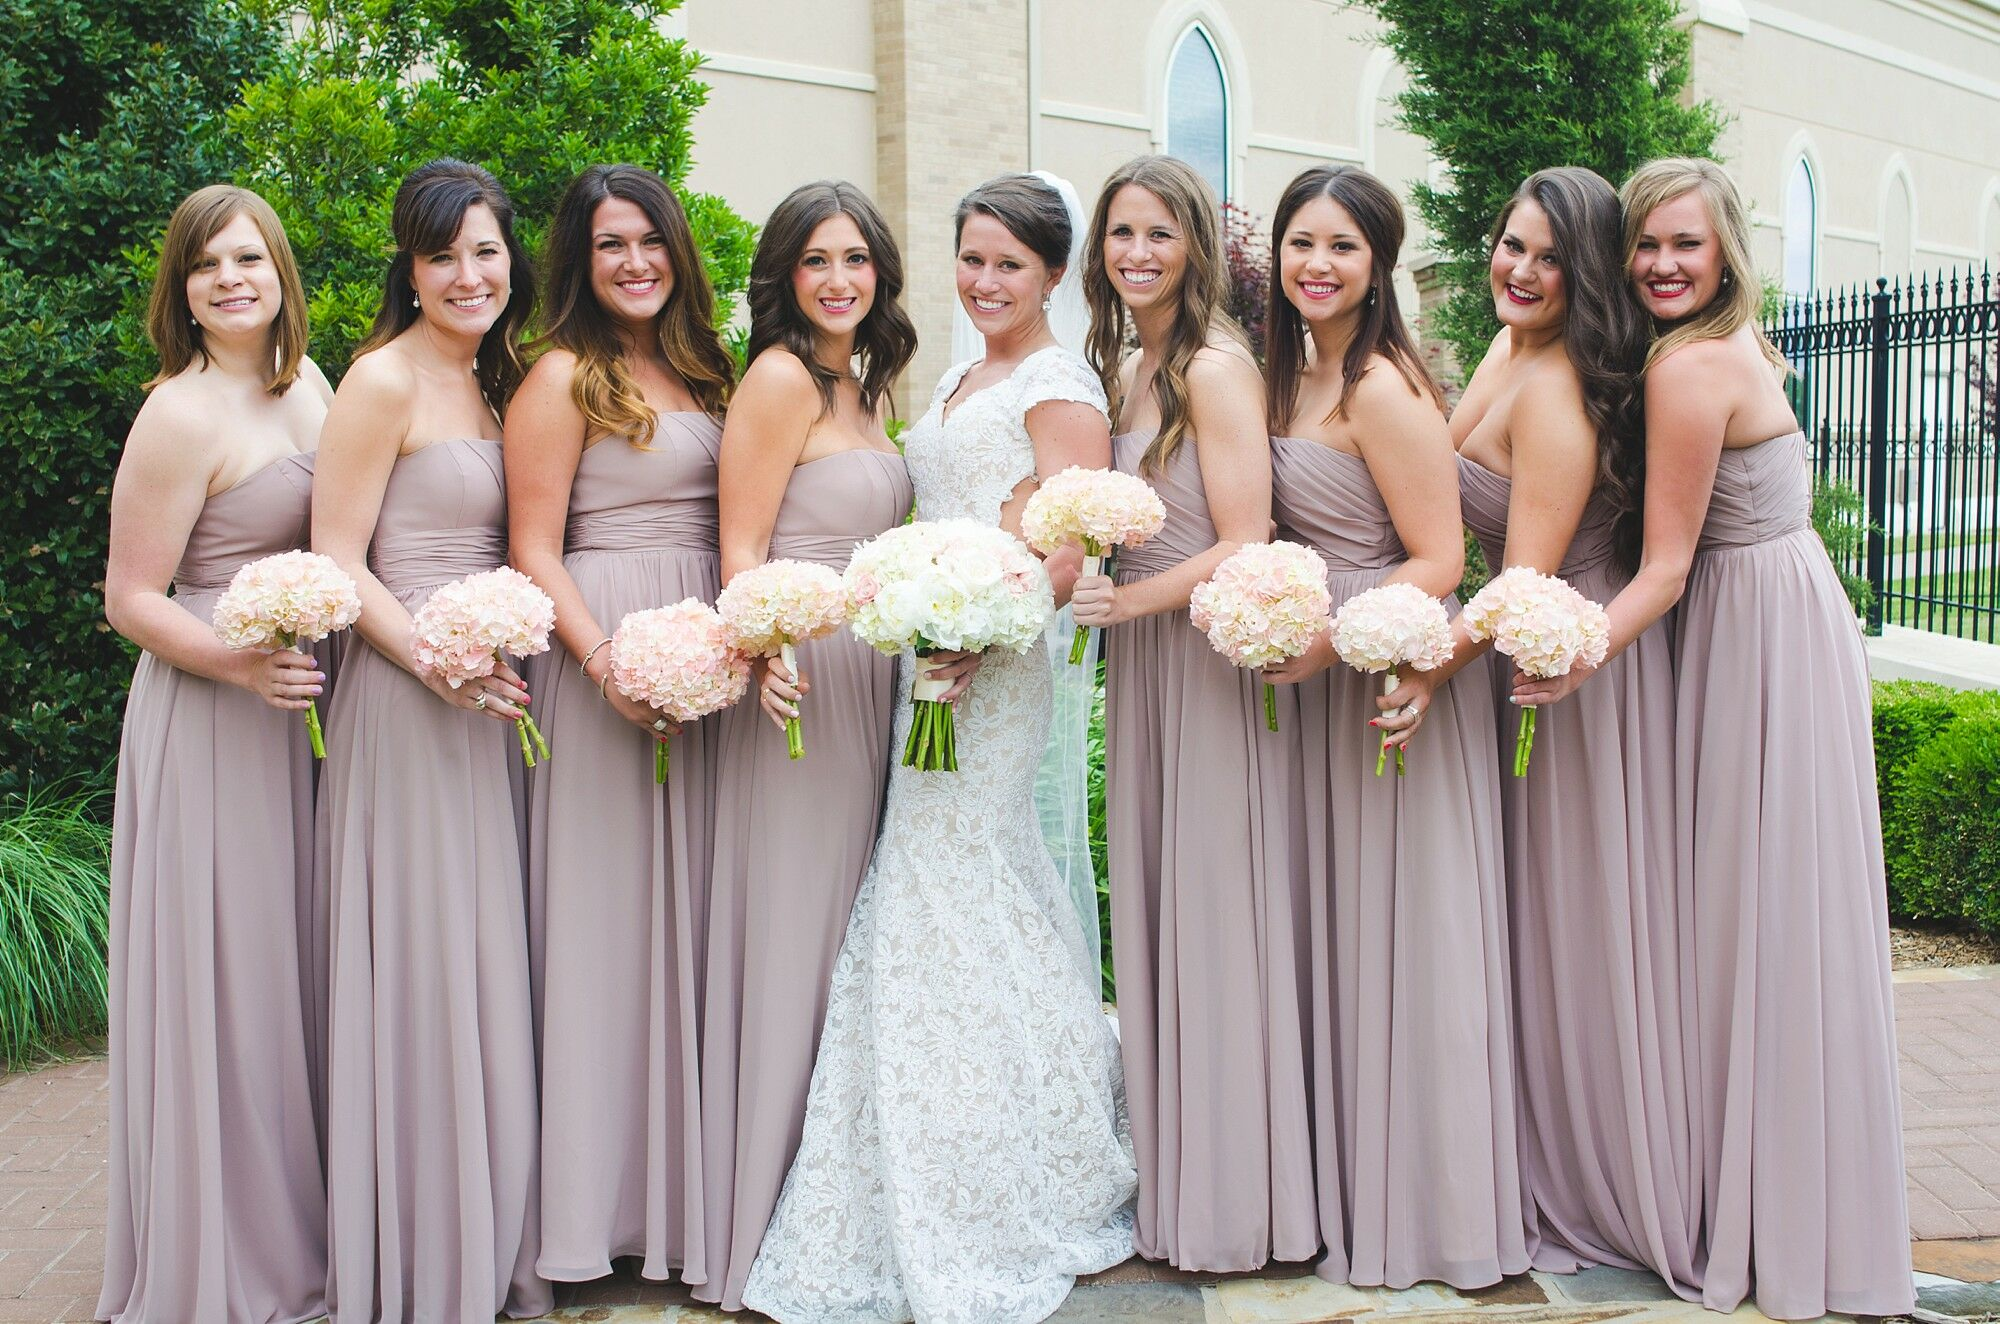 Neutral Pink Bridesmaids Dresses With Blush Bouquets